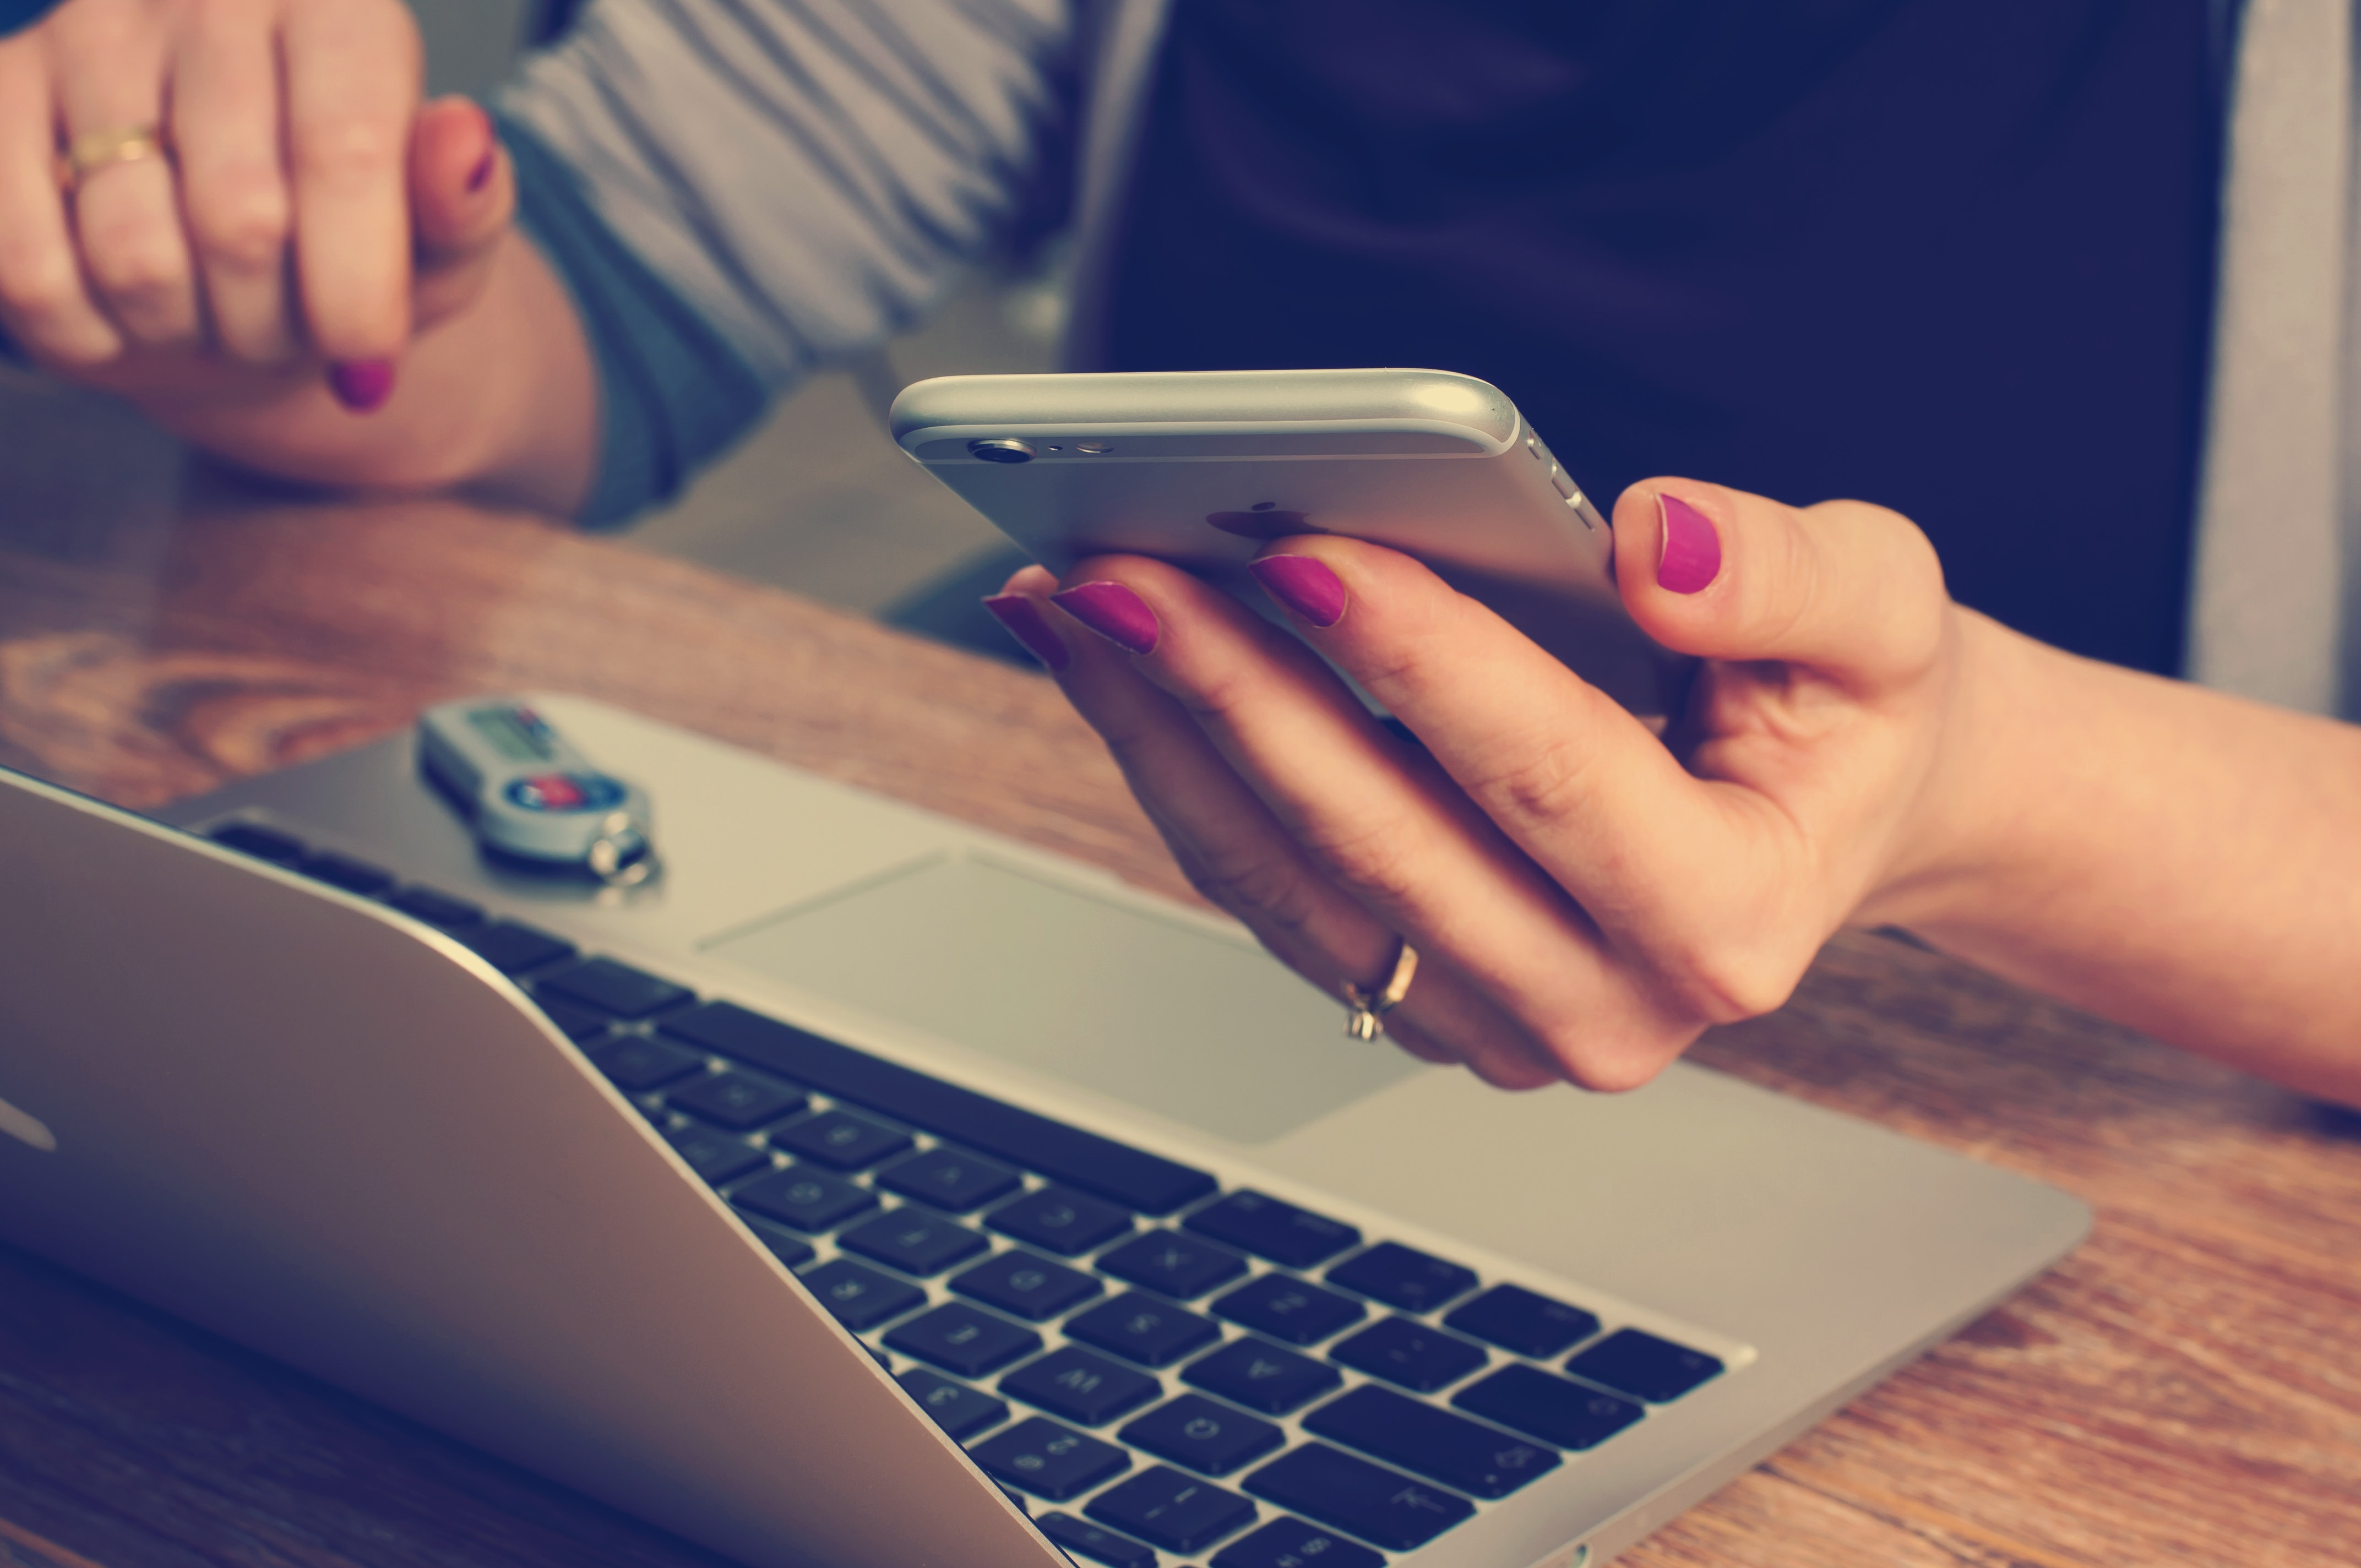 A woman's hand with a ring and a polished nail holding an iphone towards a laptop on a desk with a distant flash drive.